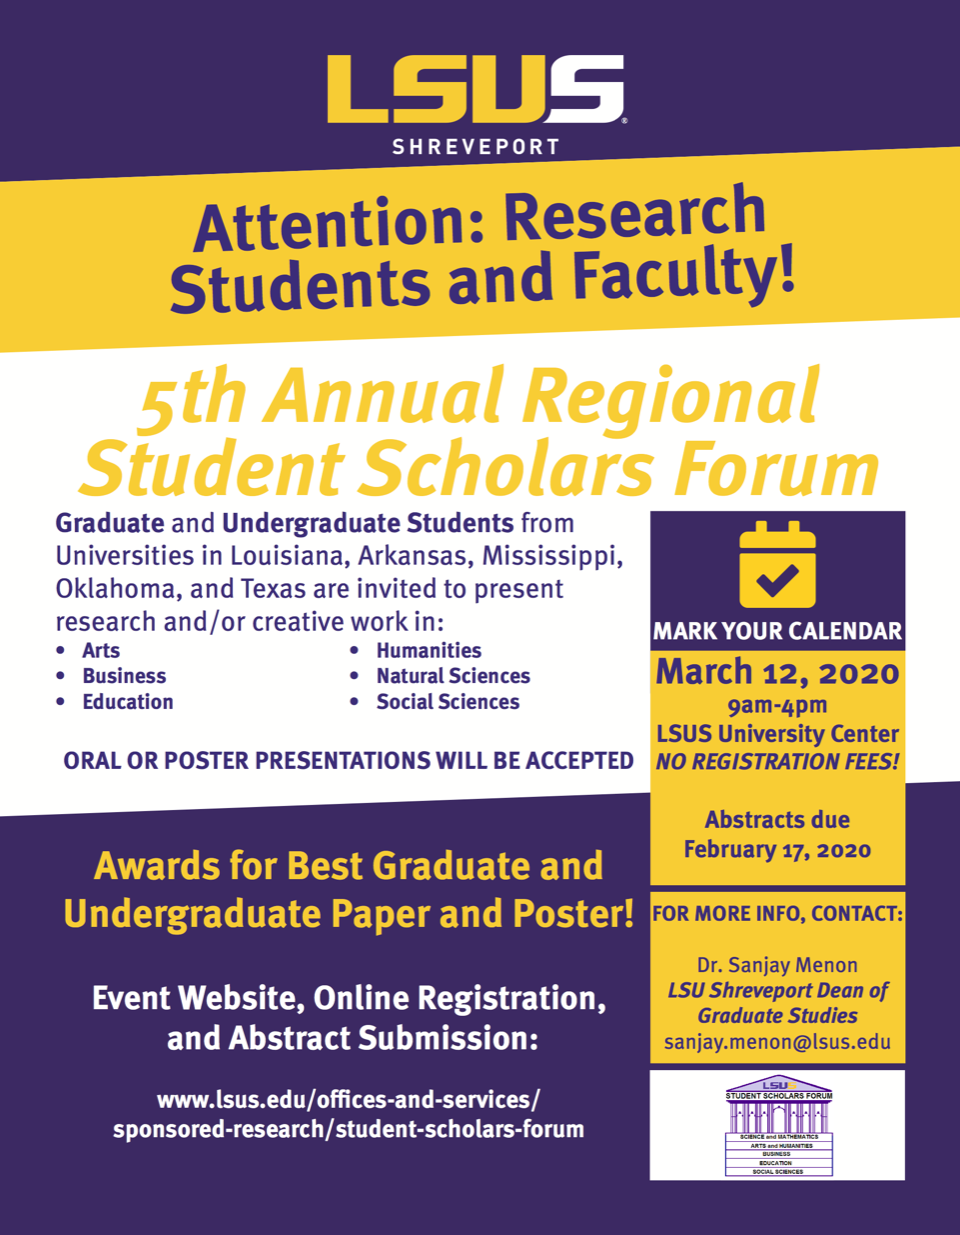 5th Annual Regional Student Scholars Forum at LSU Shreveport